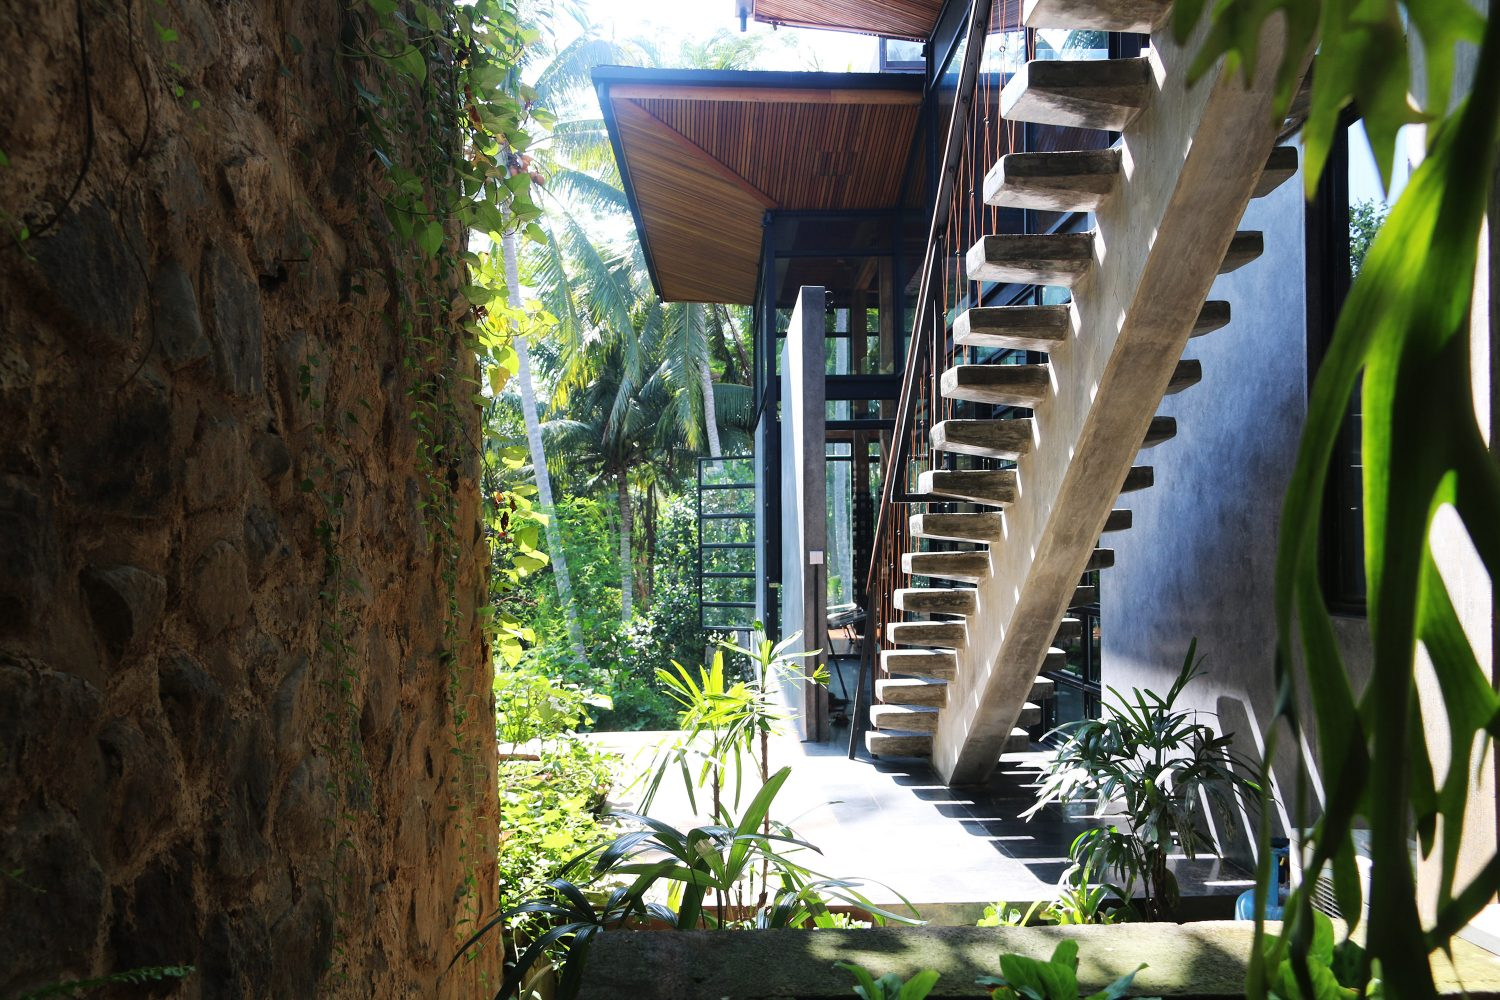 House 1 | Spacious Residence in Bali by Alexis Dornier